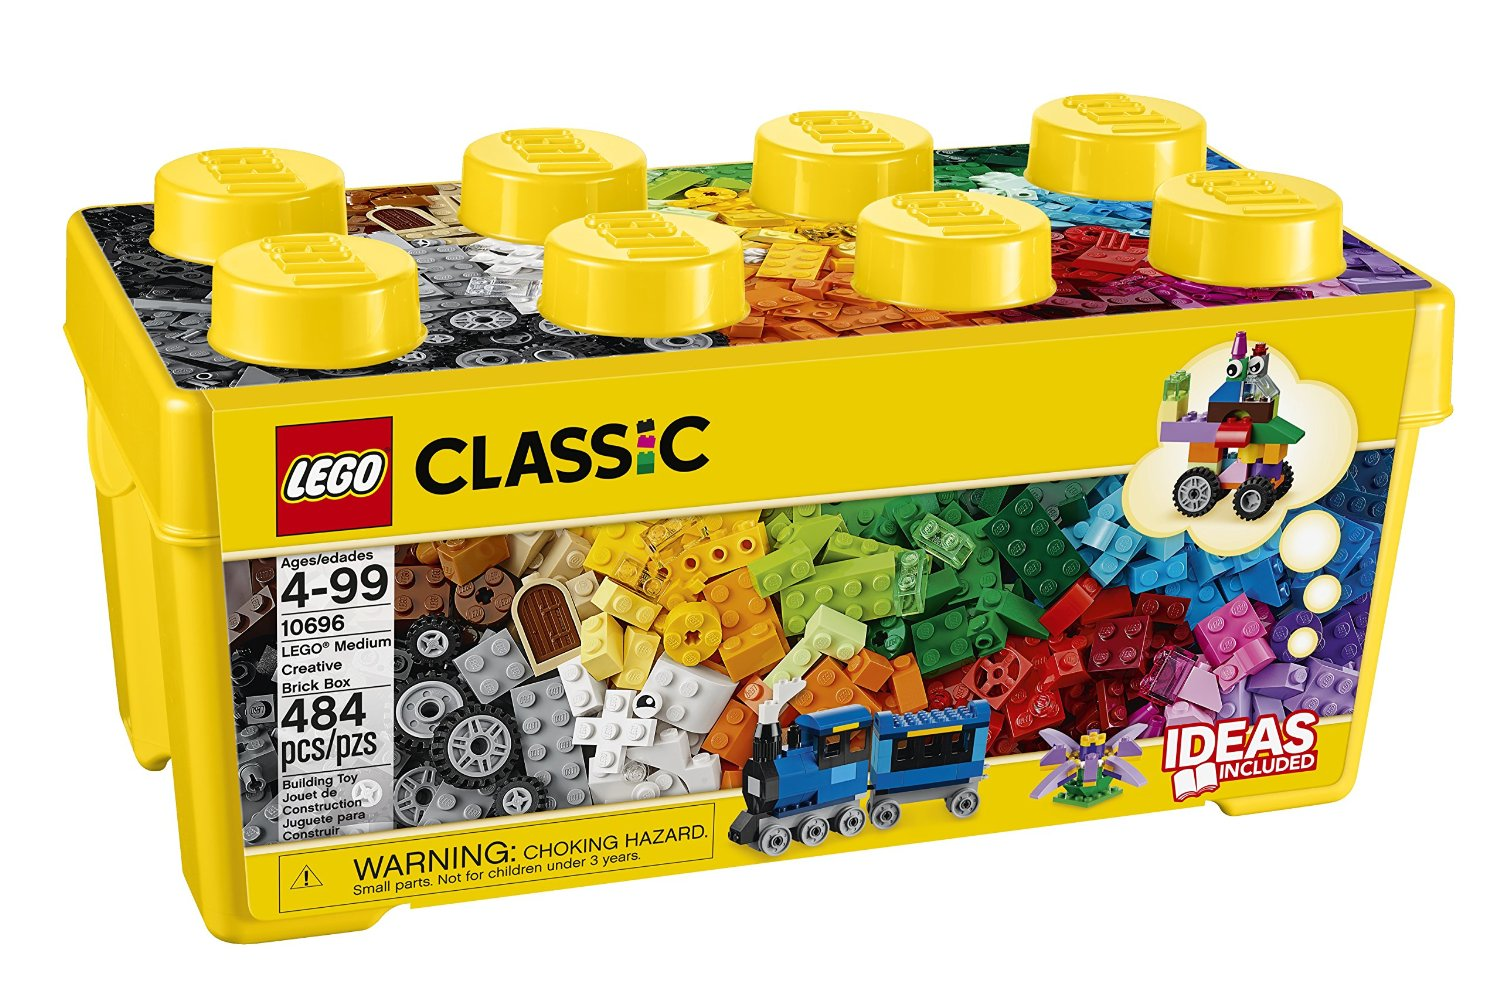 Lego Classic Box | Little Genius Gift Guide | Amber Simmons